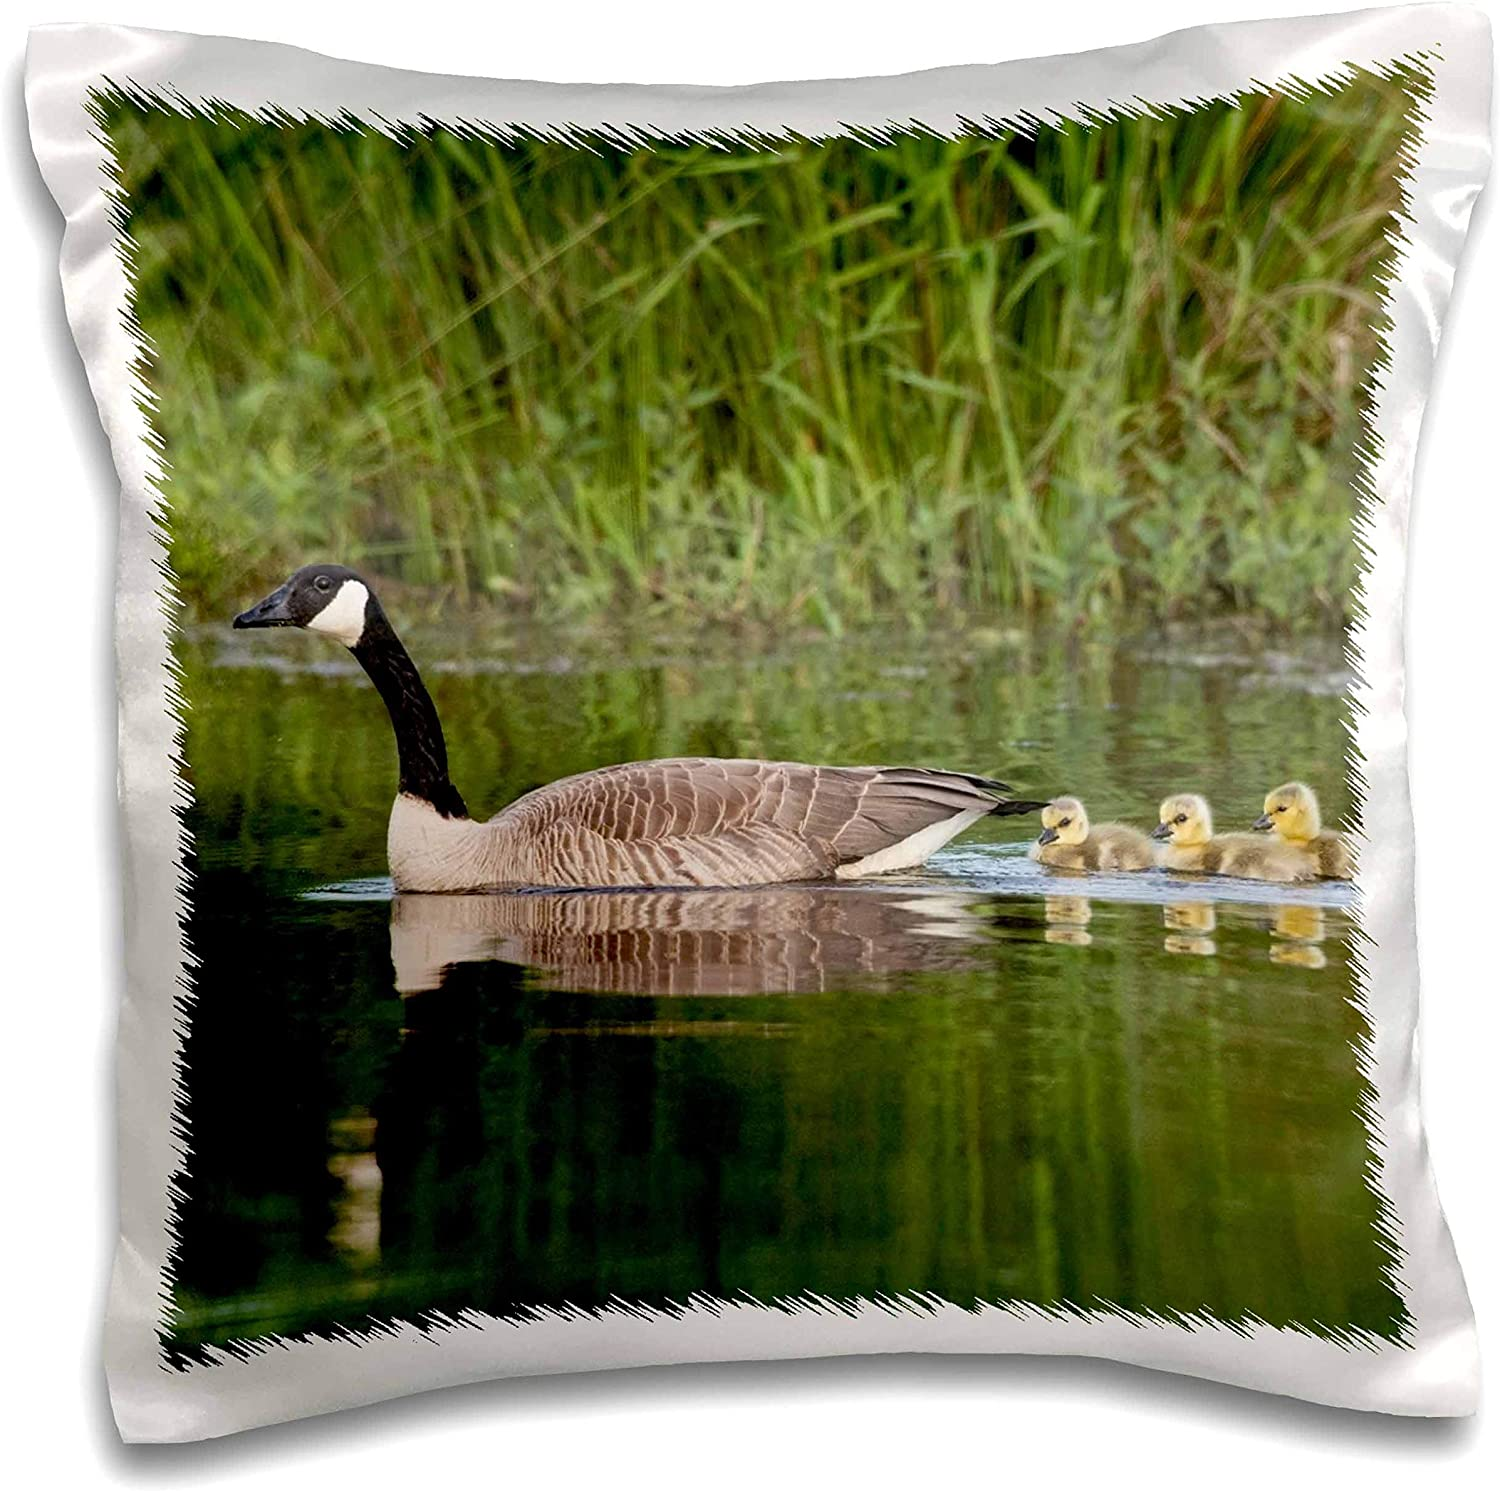 3dRose Canada geese with newly hatched goslings - Pillow Cases (pc_330614_1)